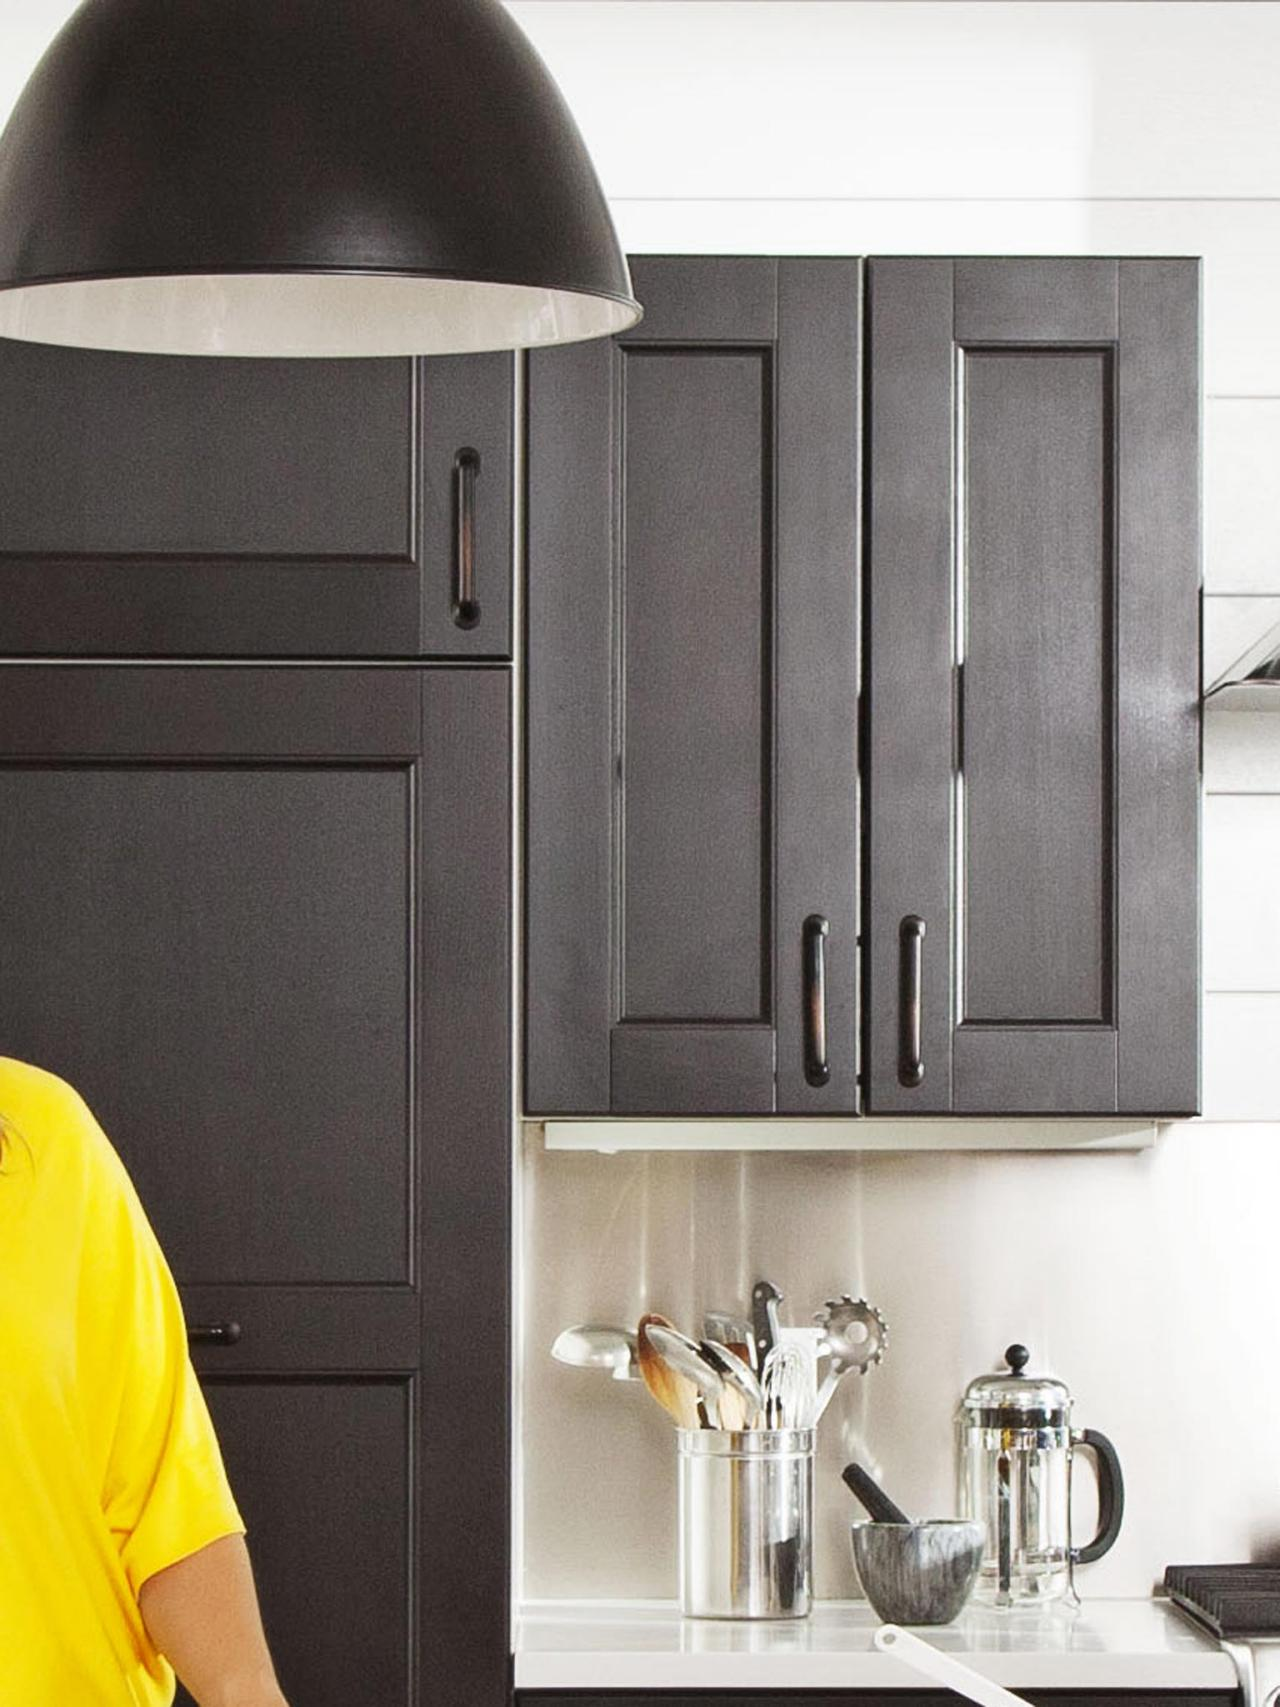 Le Meilleur Kitchen Cabinet Door Styles Pictures Ideas From Hgtv Hgtv Ce Mois Ci